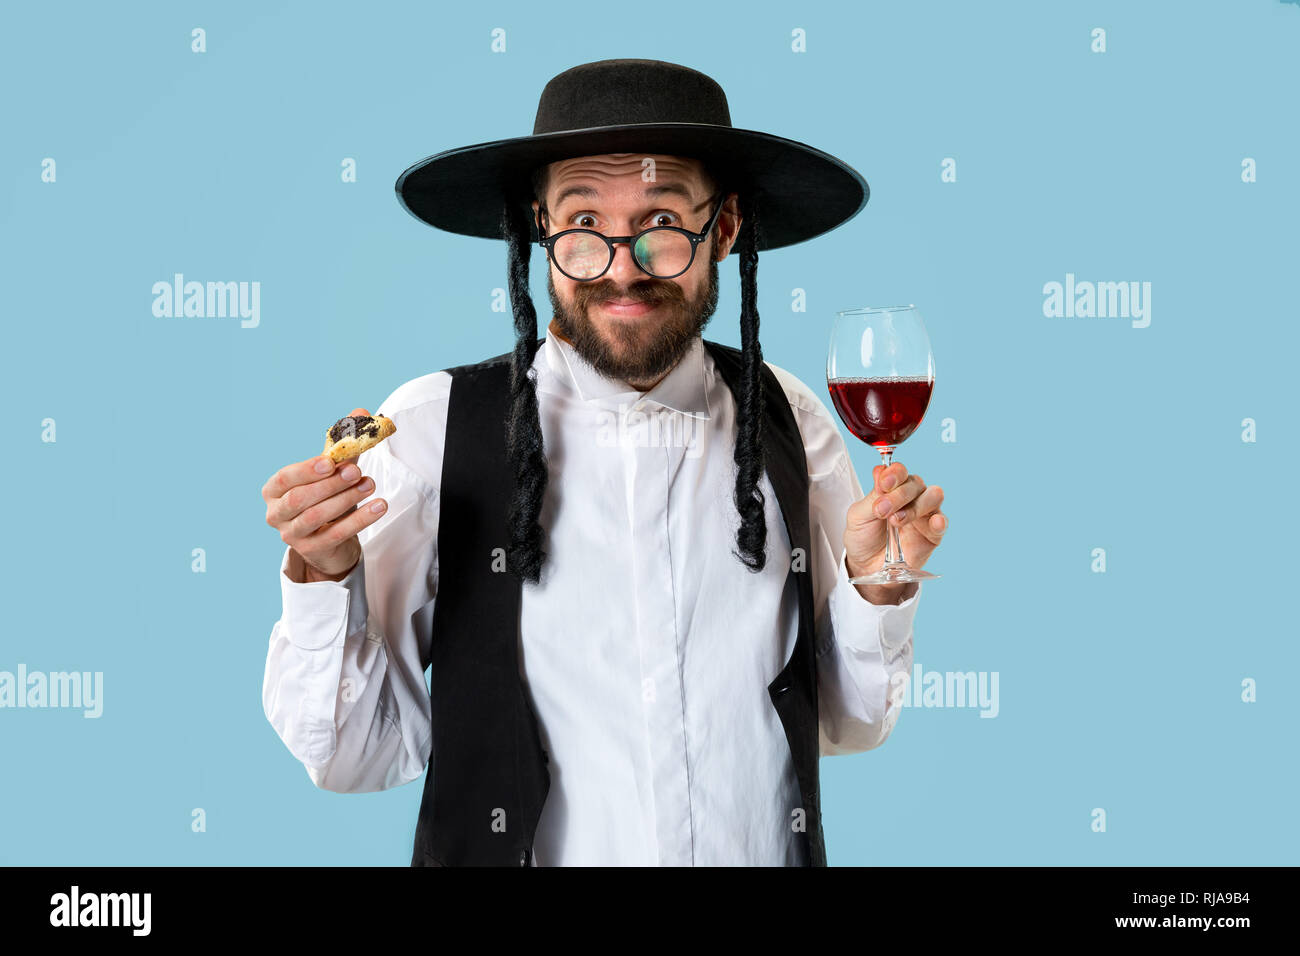 The young orthodox Jewish man with black hat with Hamantaschen cookies for Jewish festival of Purim at studio. The purim, jewish, festival, holiday, celebration, judaism, pastry, tradition, cookie, religion concept - Stock Image